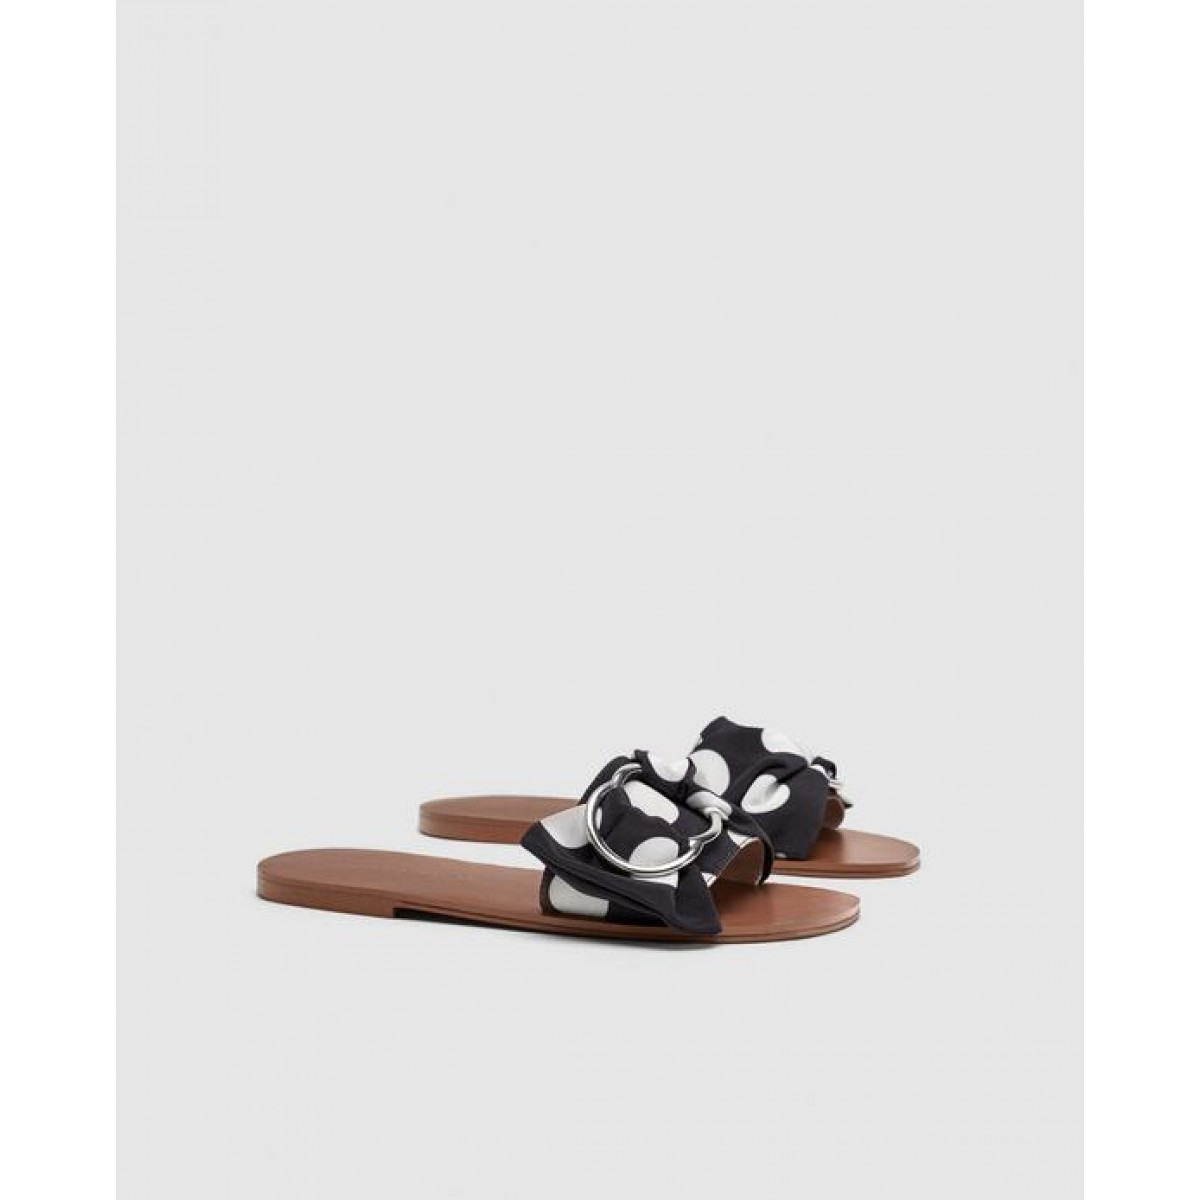 Zara Polka Dot Flat Sandals